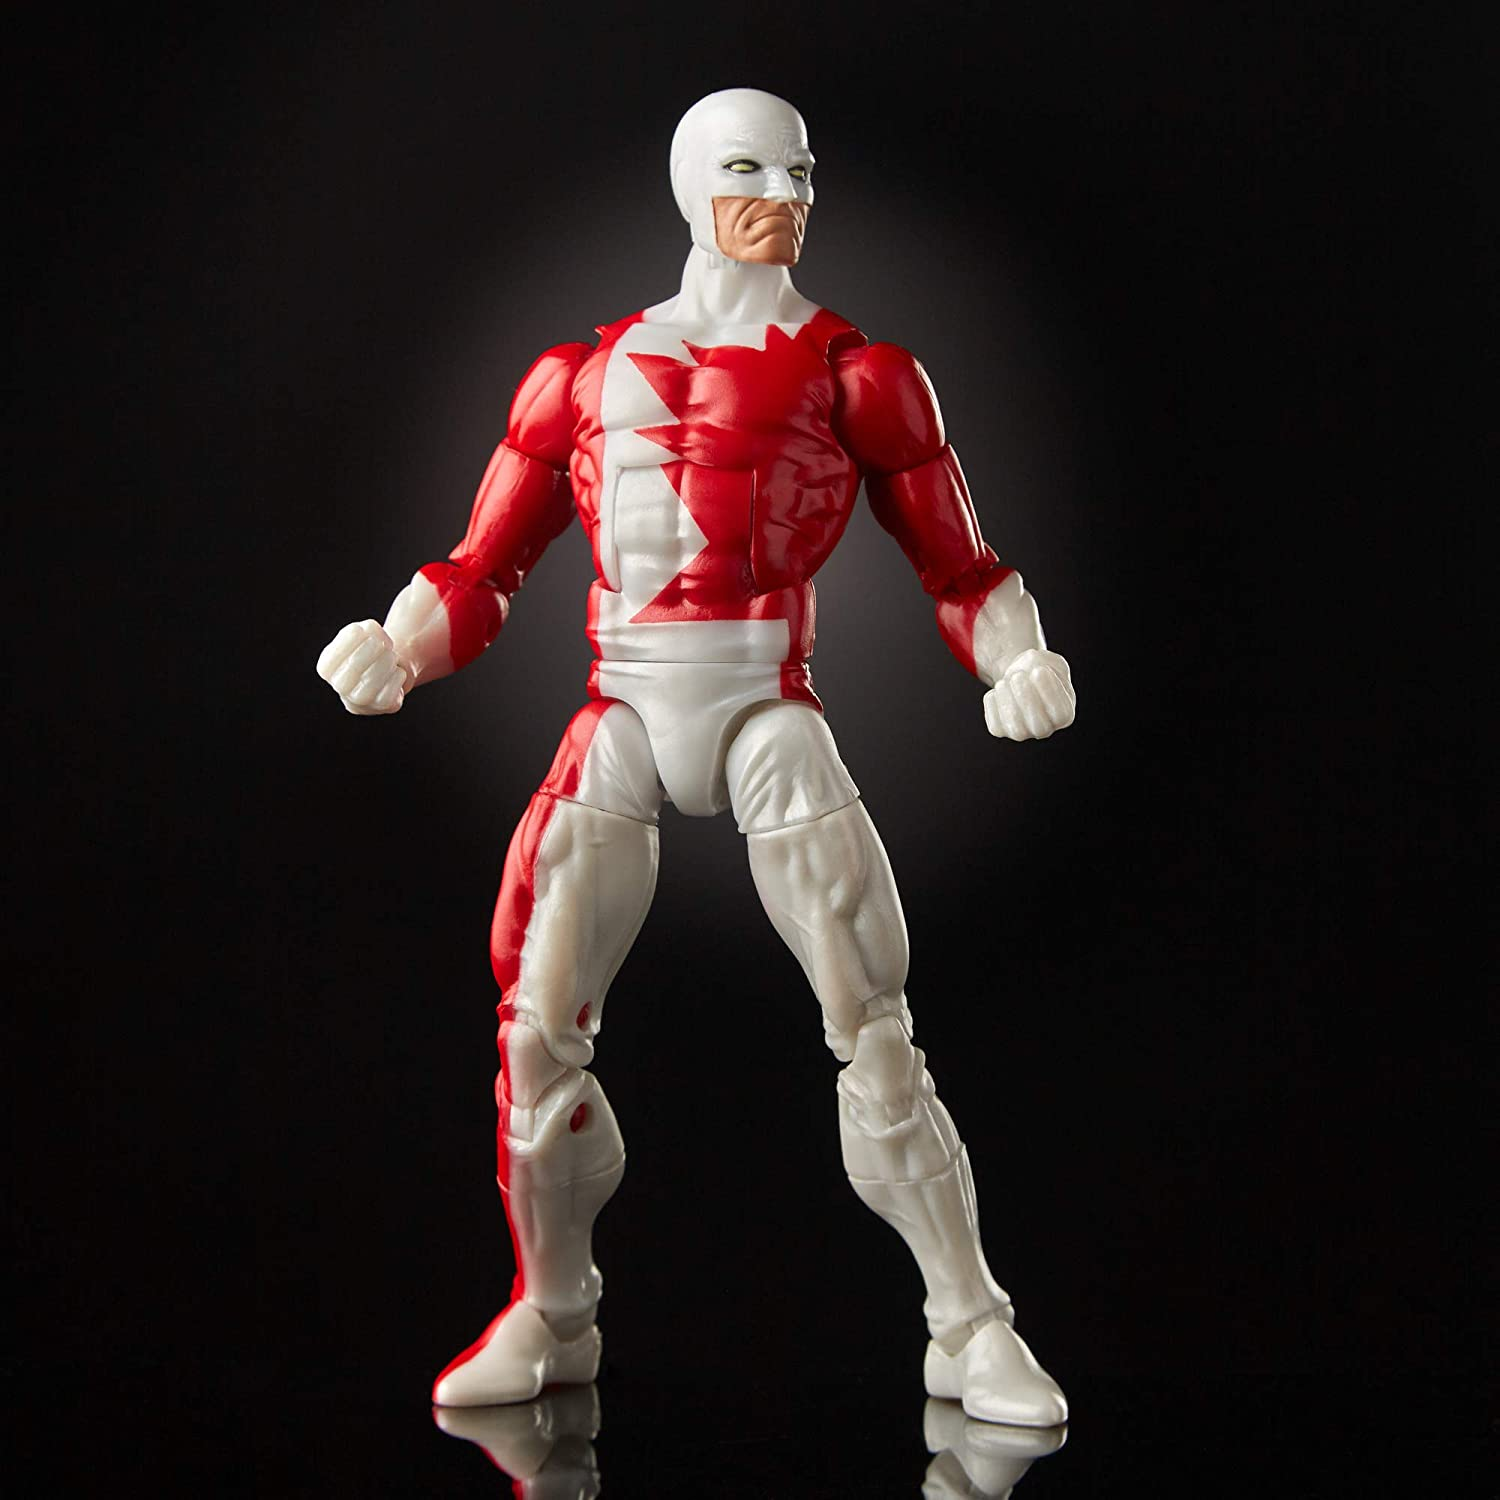 Marvel Legends E5302(E6117) Series 6-inch Collectible Action Figure Marvel's Guardian Toy